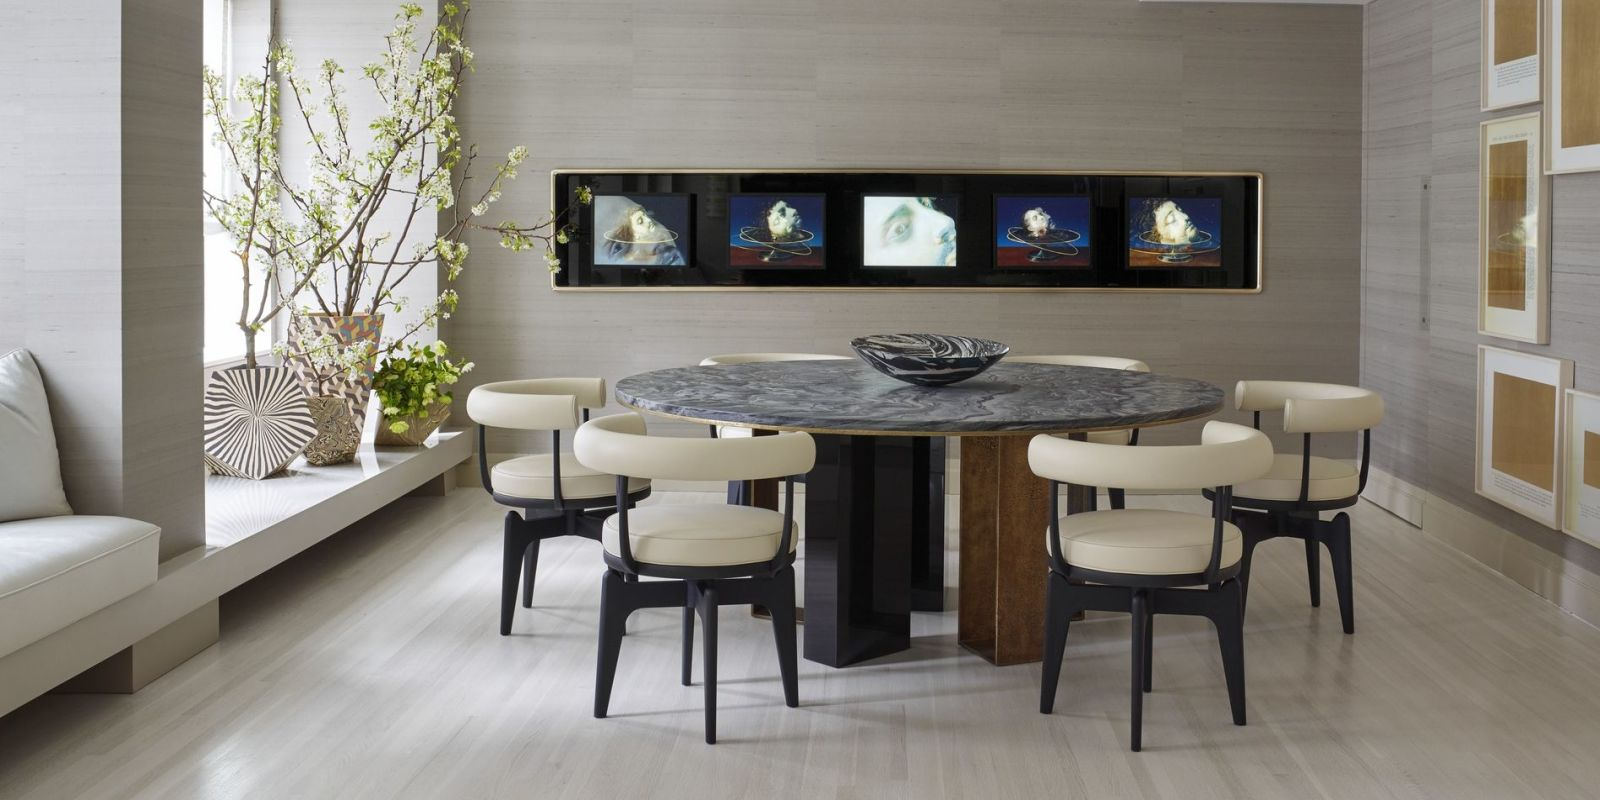 25 modern dining room decorating ideas contemporary for Dining room themes decor